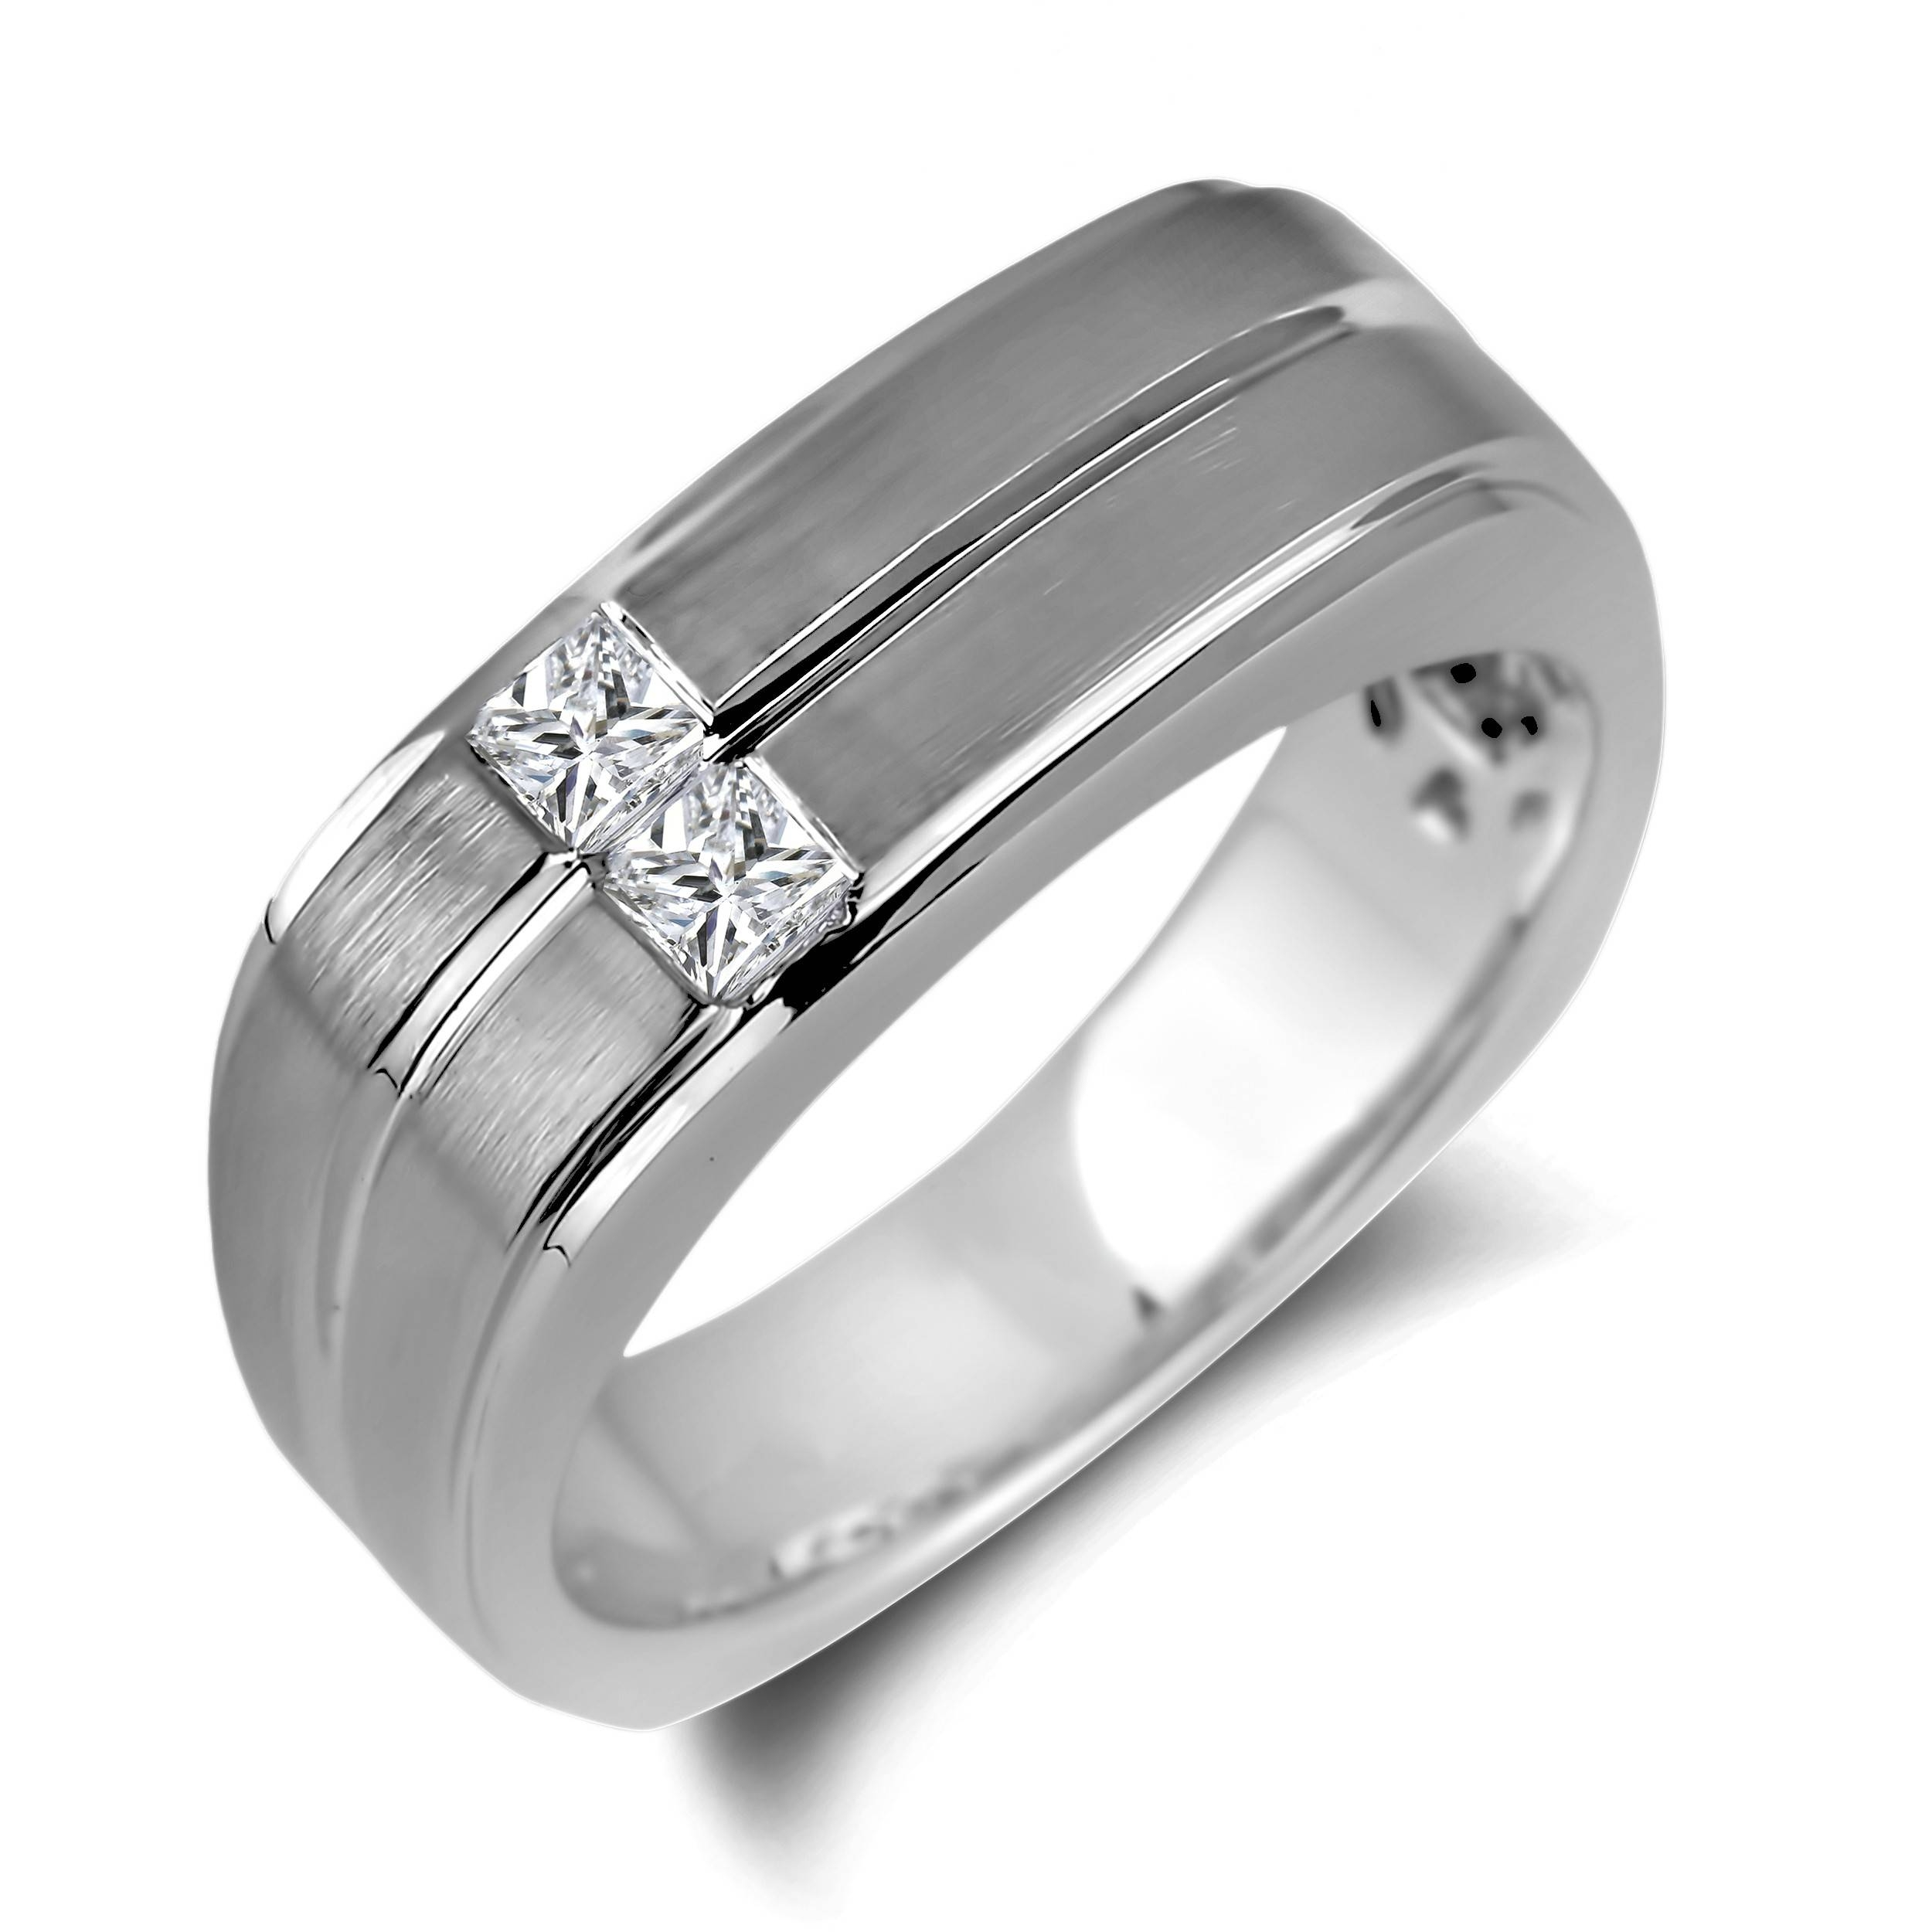 2018 Latest Mens Square Wedding Bands